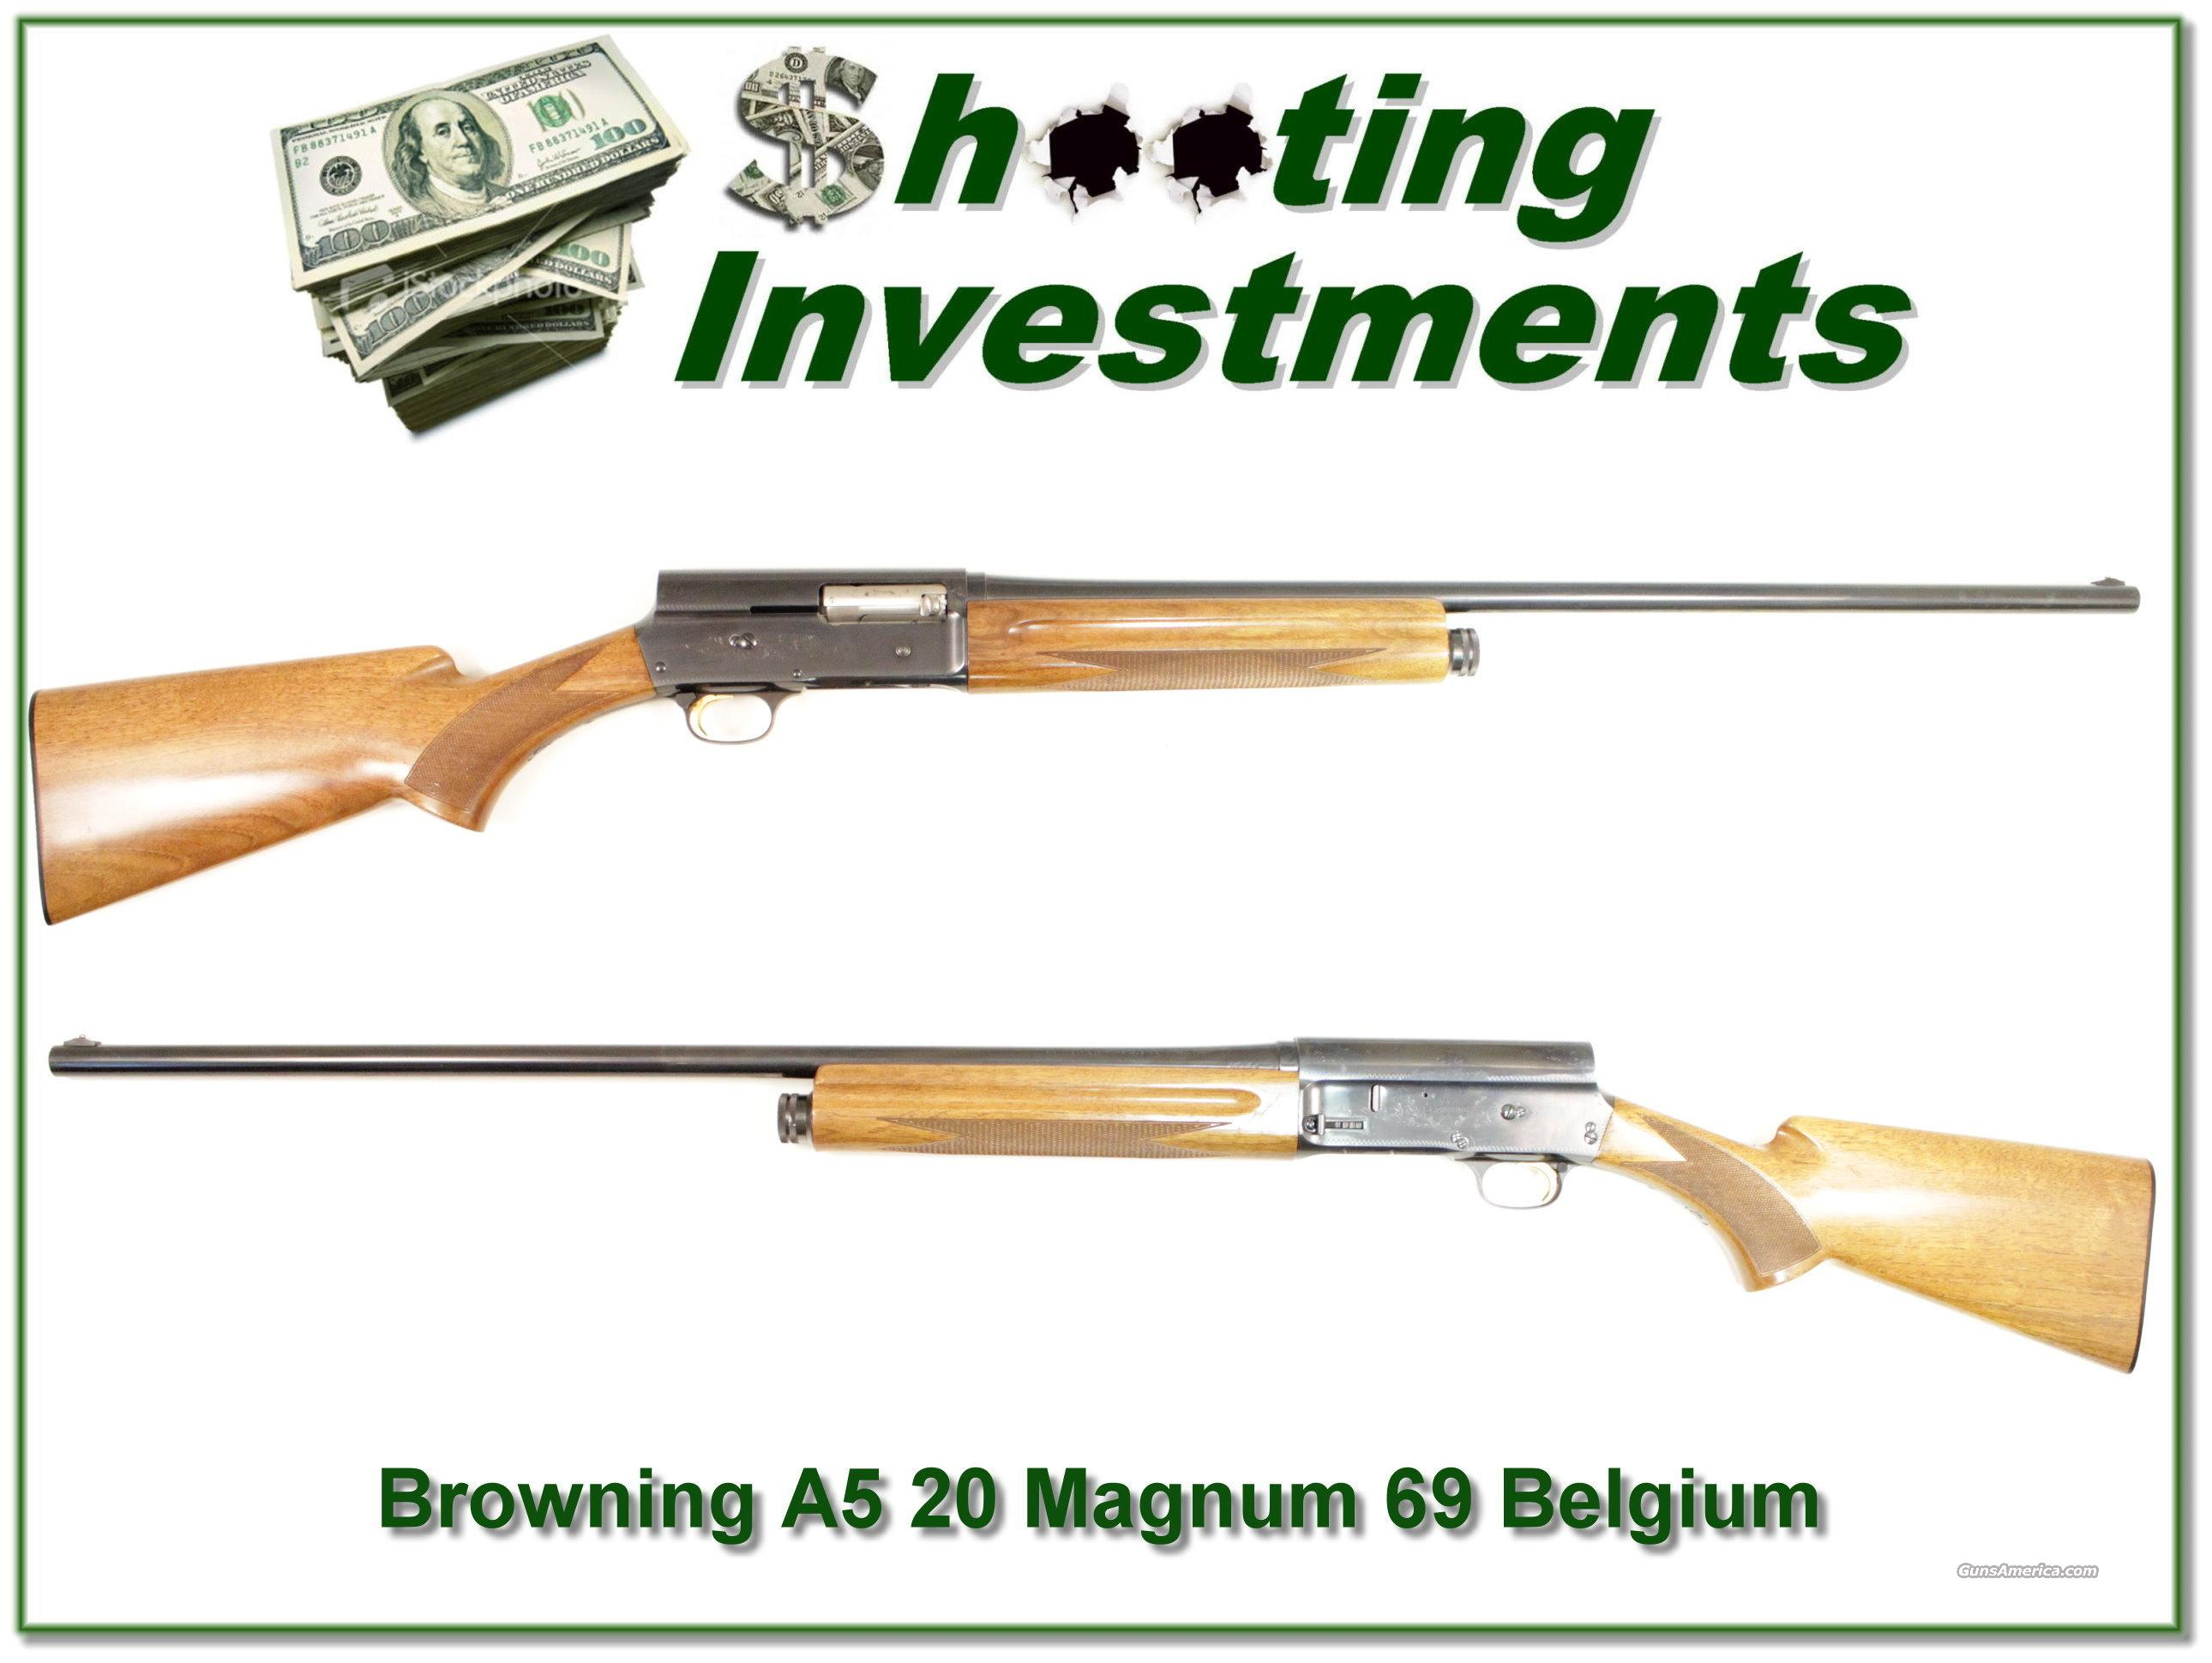 Browning A5 Magnum 20 69 Belgium Honey Blond!  Guns > Shotguns > Browning Shotguns > Autoloaders > Hunting